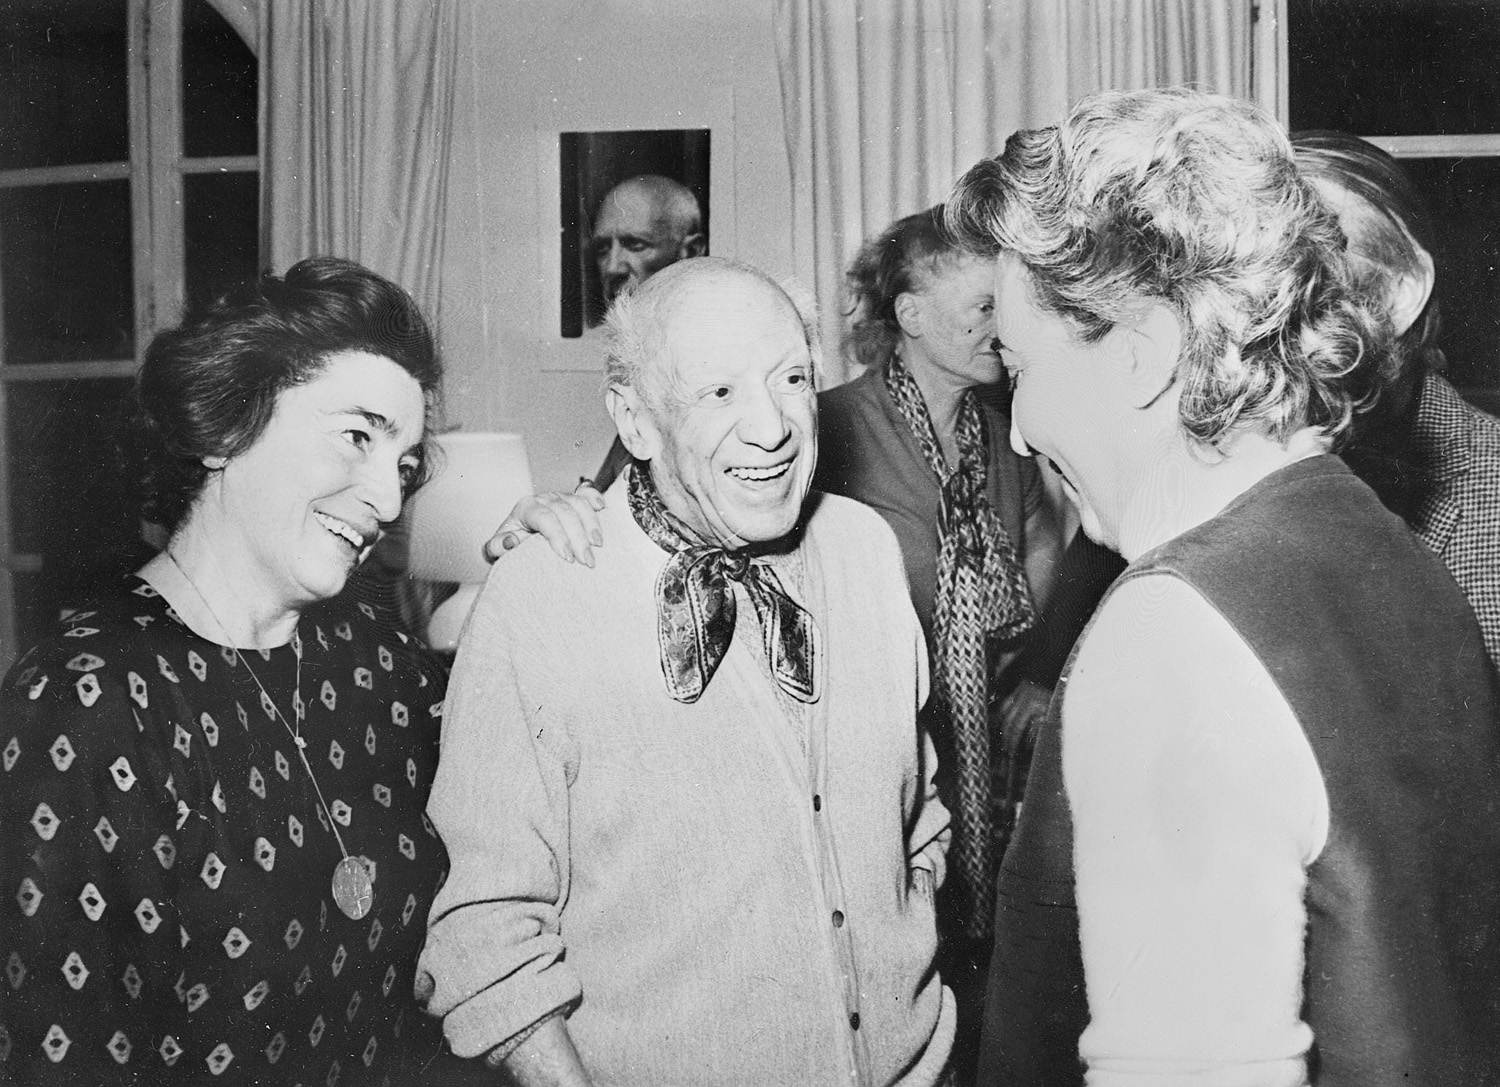 MOUGINS, FRANCE: Pablo Picasso and his wife Jacqueline (L) with friends duing a party at their home in Mougins, south of France. (Photo credit should read RAPH GATTI/AFP/Getty Images)